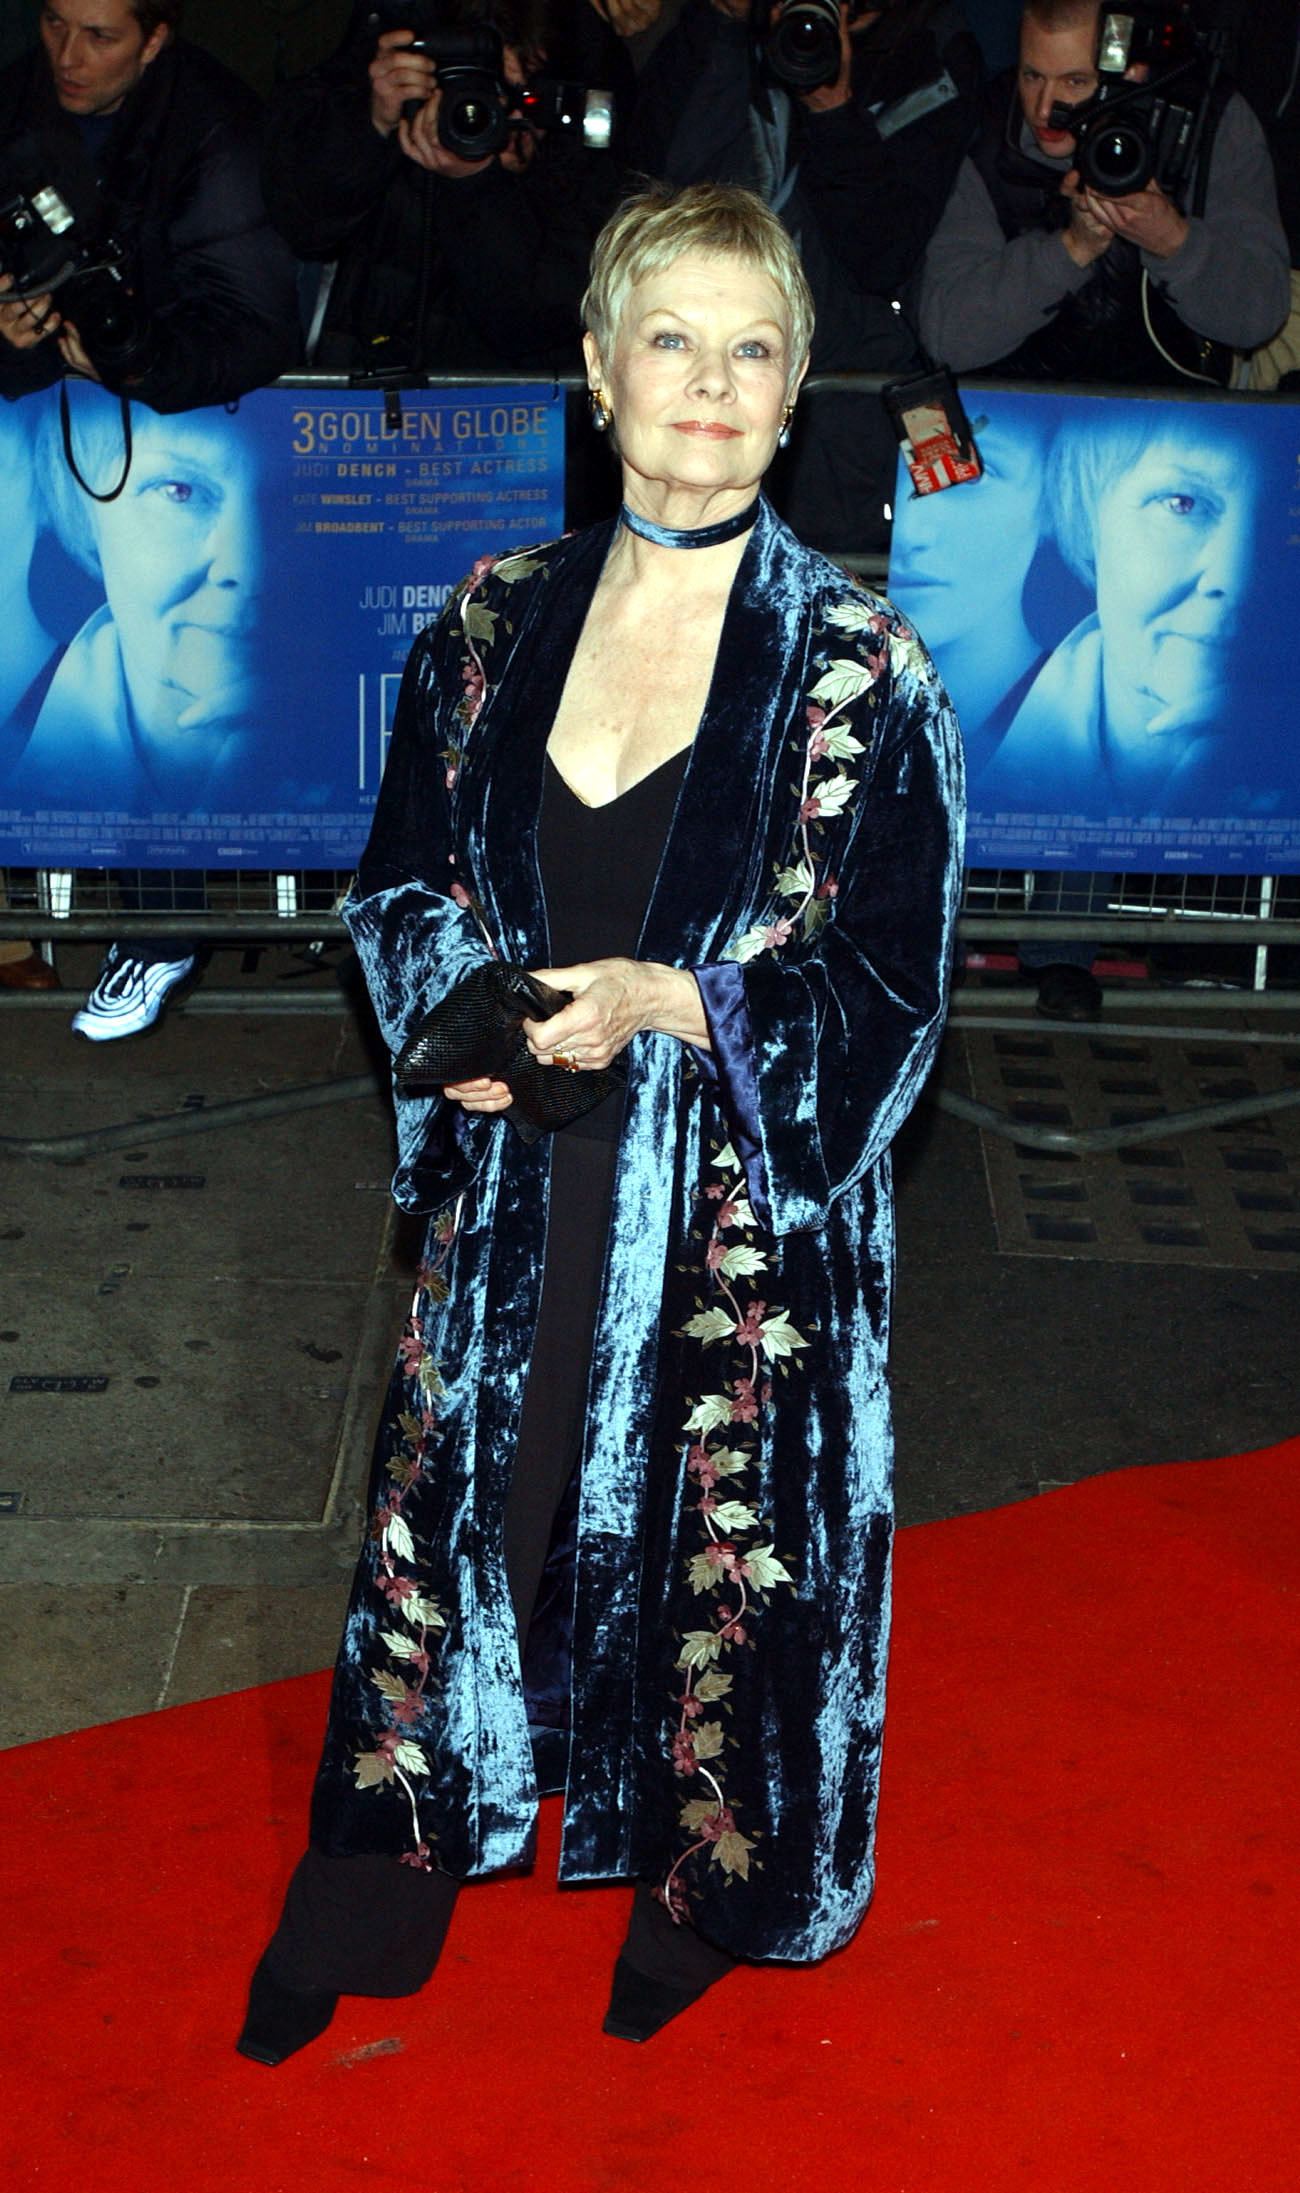 Dame Judi Dench arrives at the Curzon Mayfair in central London, for the premiere of 'Iris'. The film follows the story of Booker Prize-winning novelist and philosopher Iris Murdoch who died in 1999, played by Kate Winslet and Judi Dench. 2002